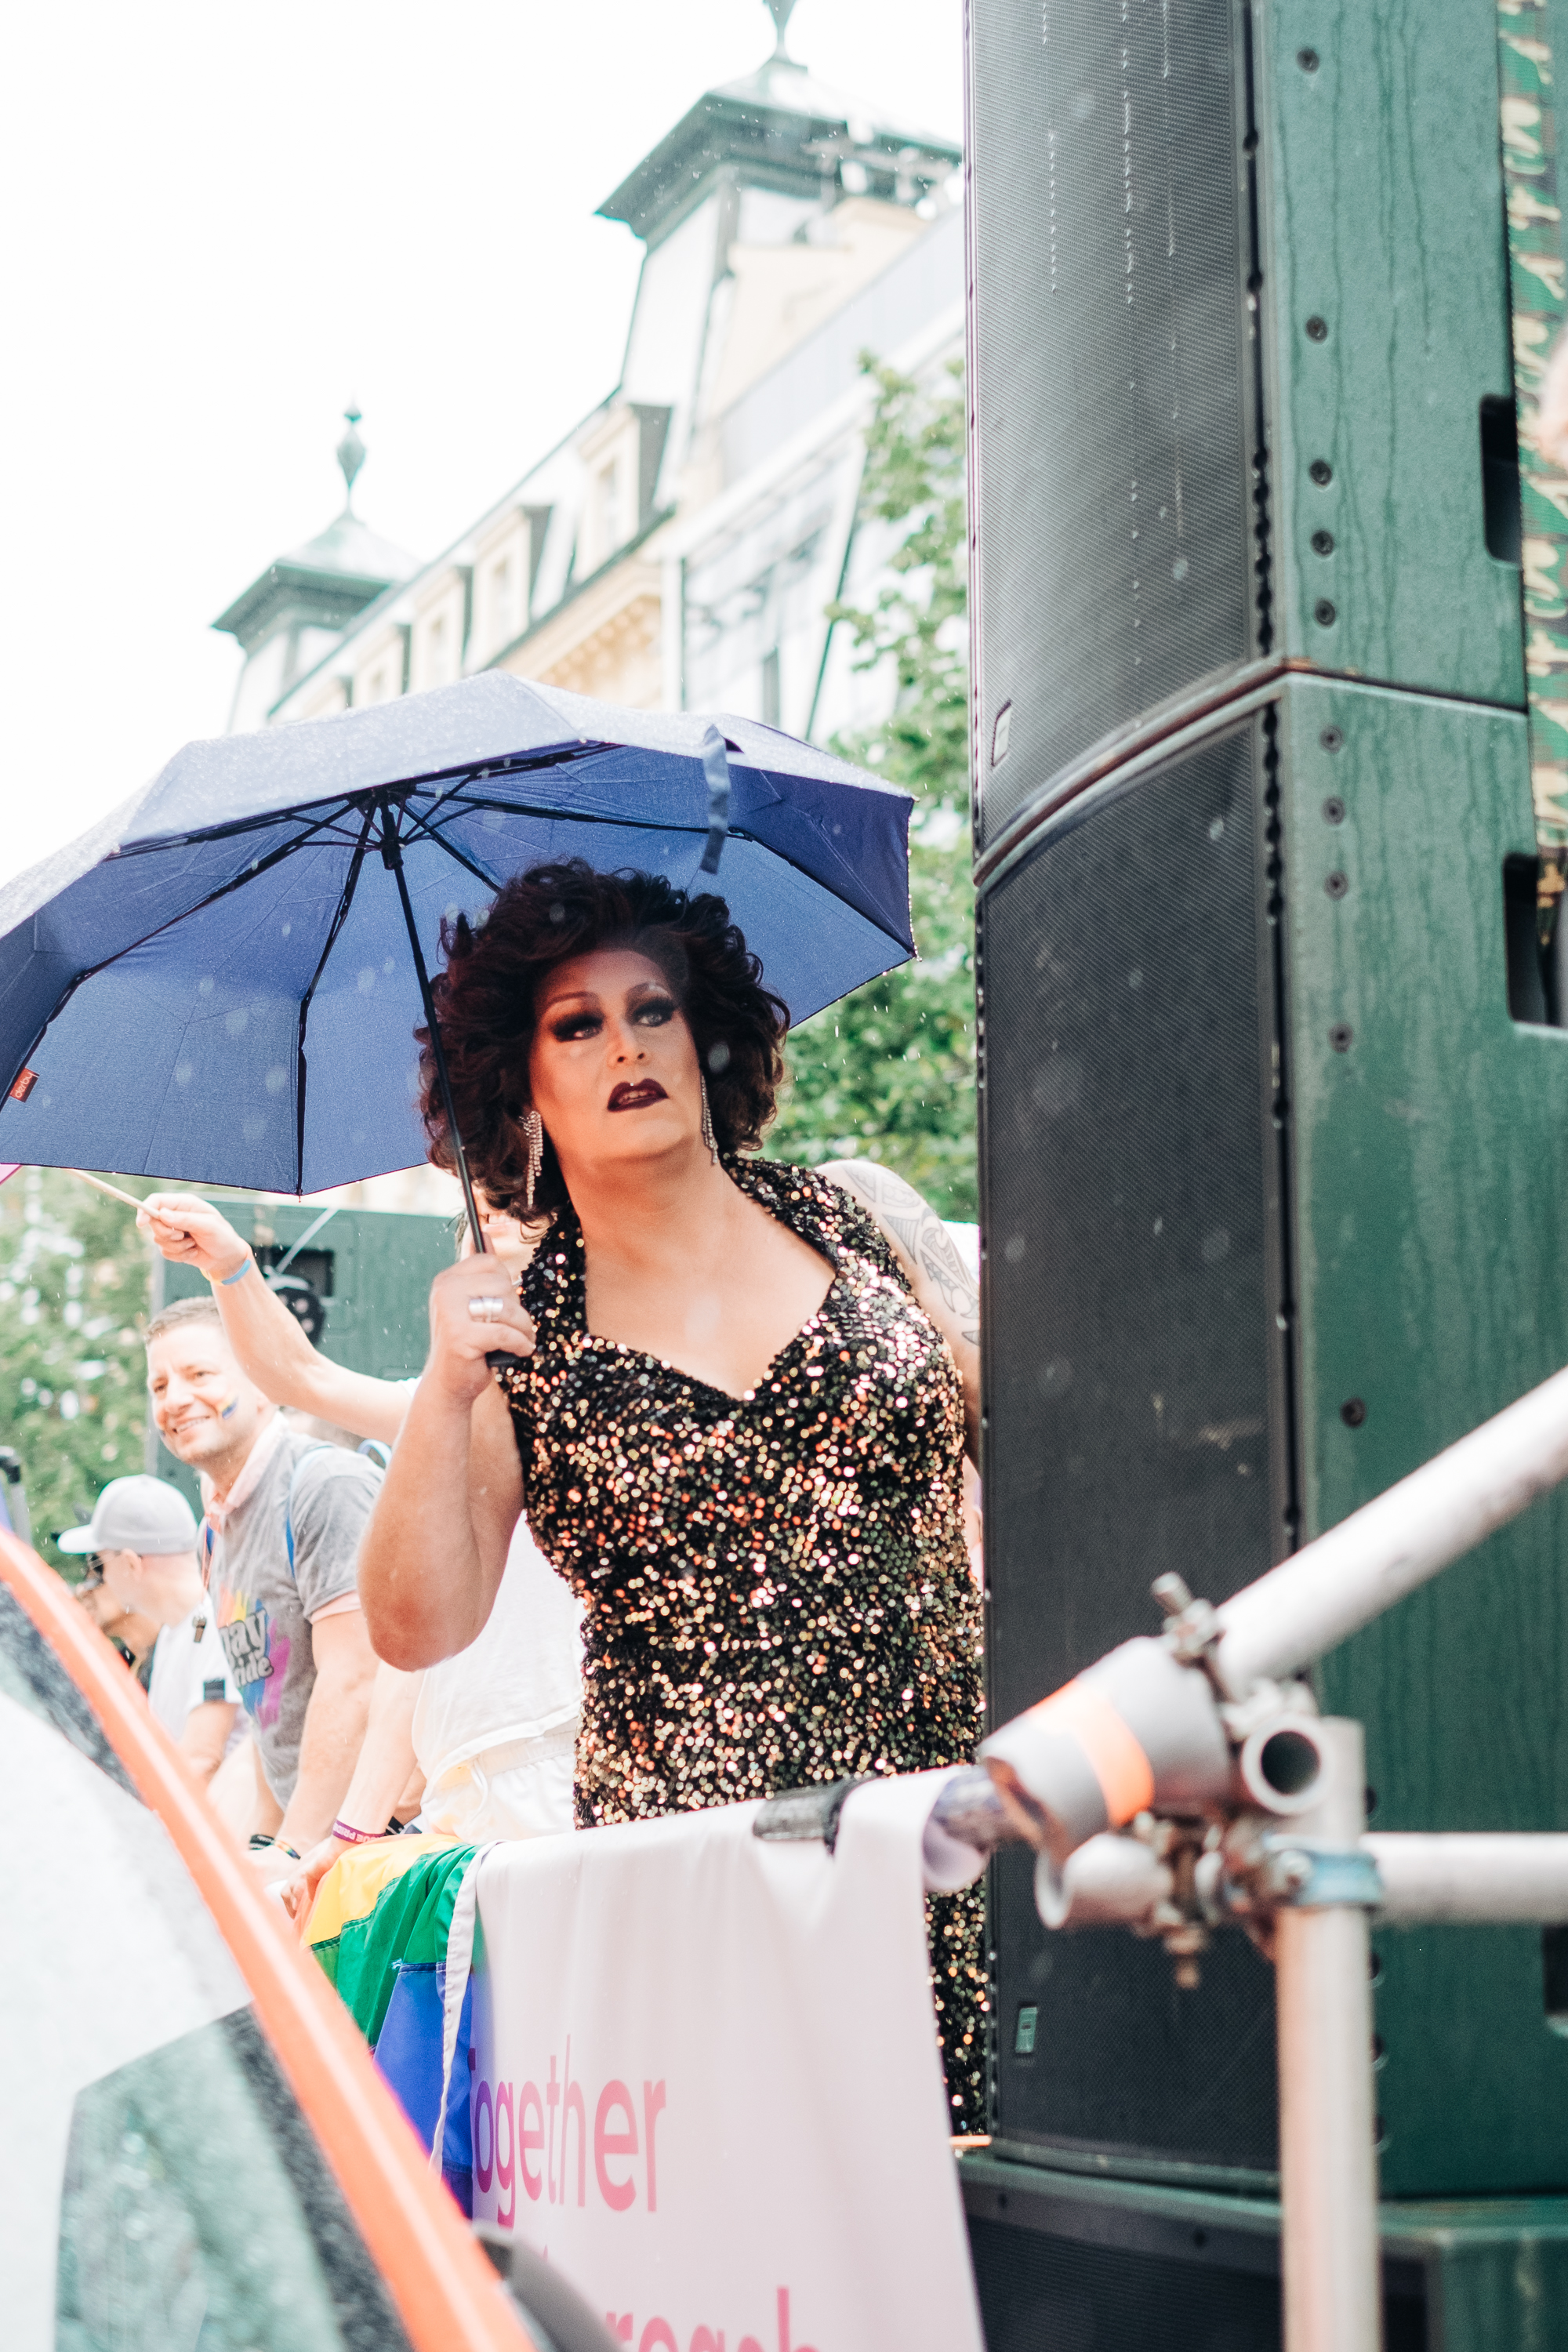 Prague Pride 2019 (16 of 47).jpg